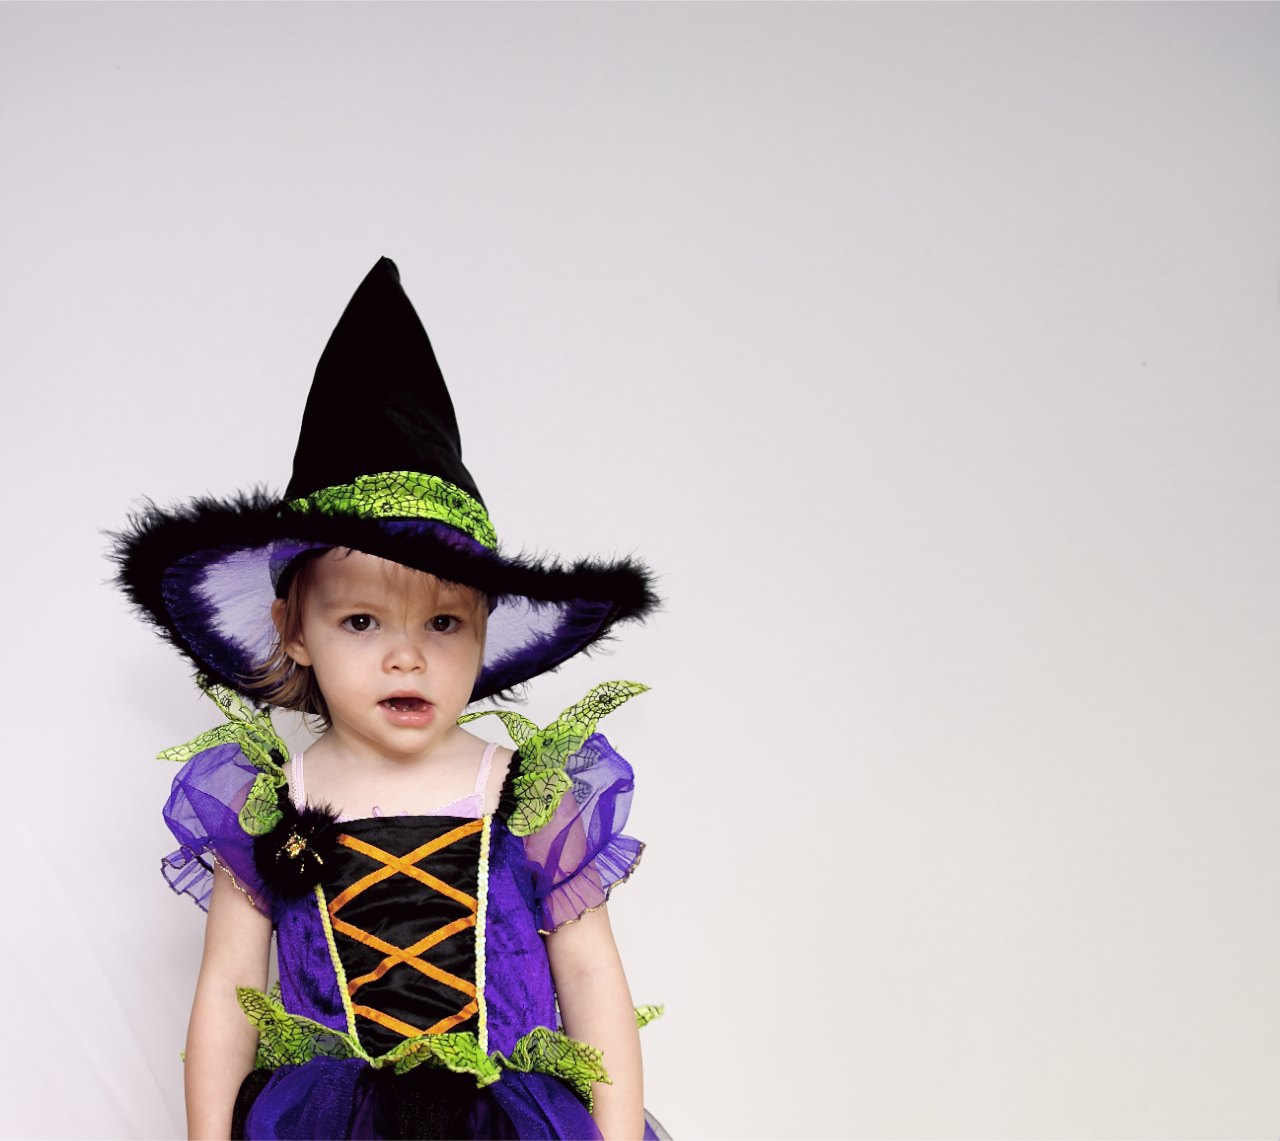 Halloween Costumes Ideas for Kids | EntertainmentMesh